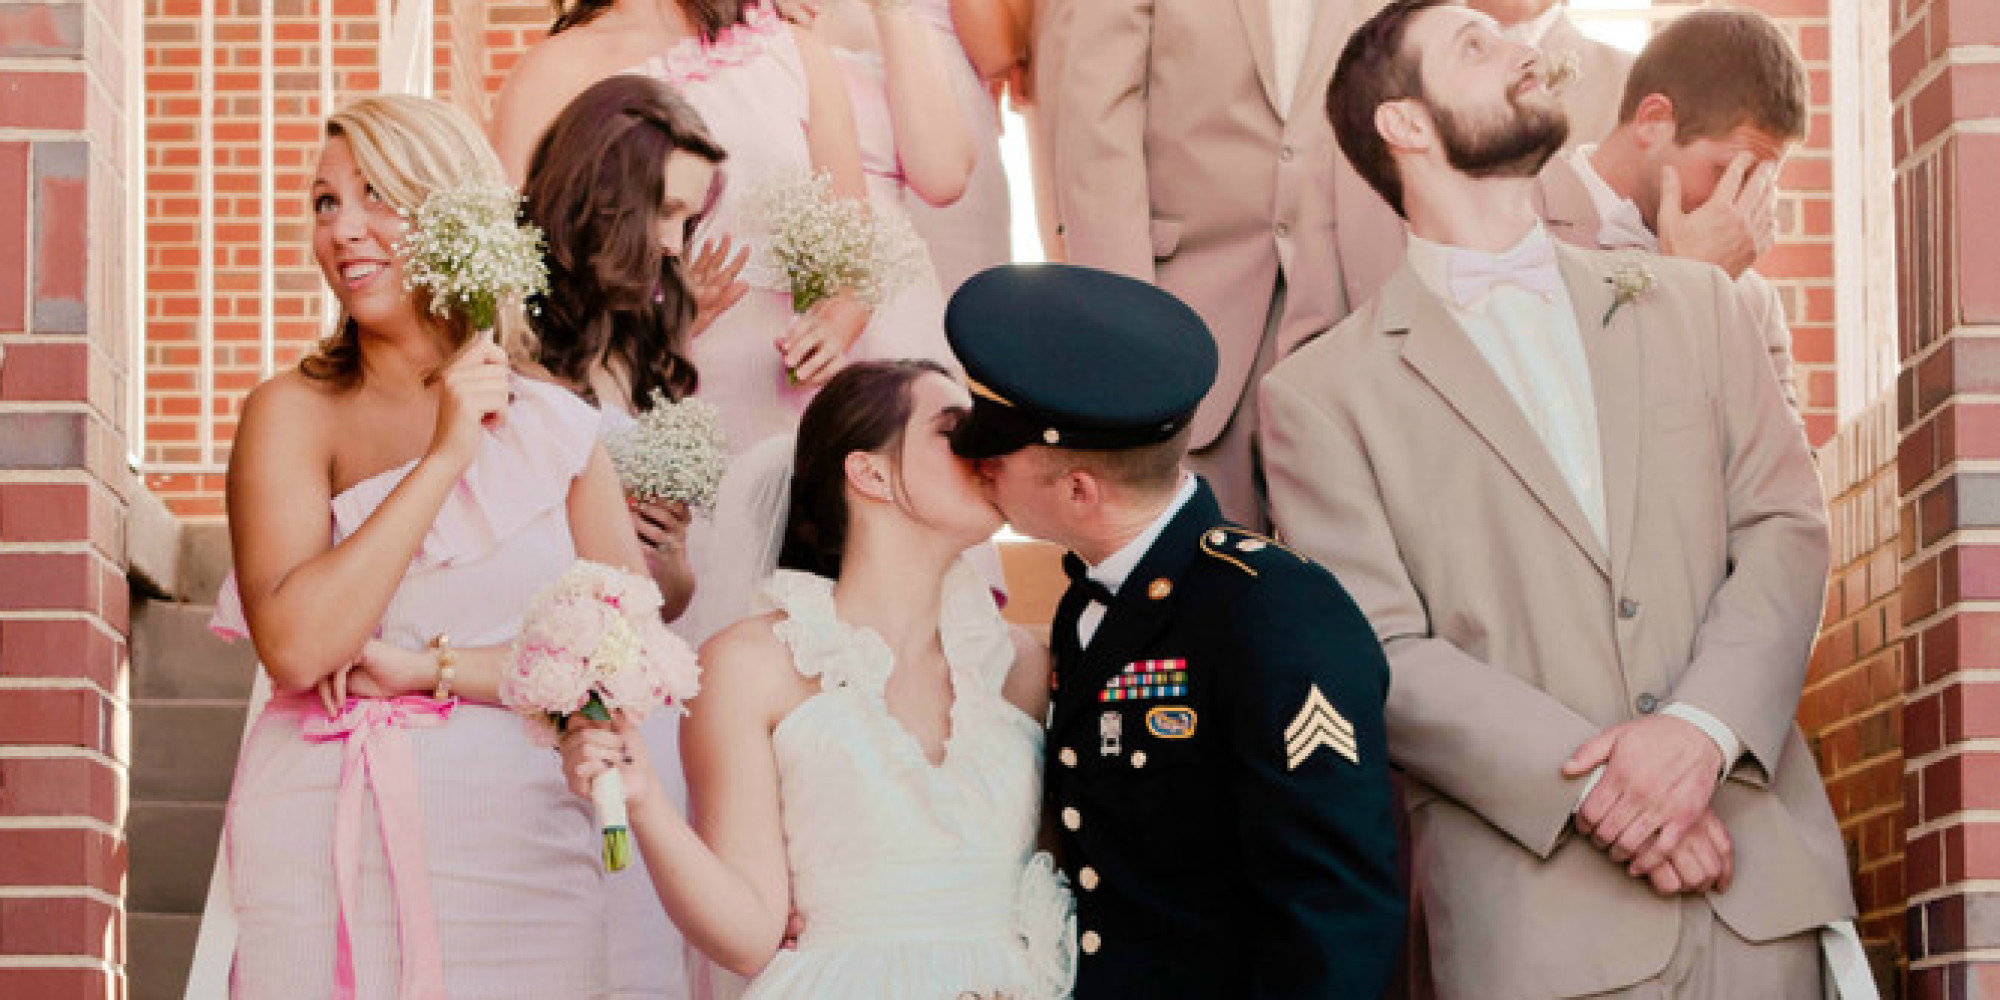 20 Awesome Photo Ideas For Wedding Parties Who Know How To Have Fun Huffpost